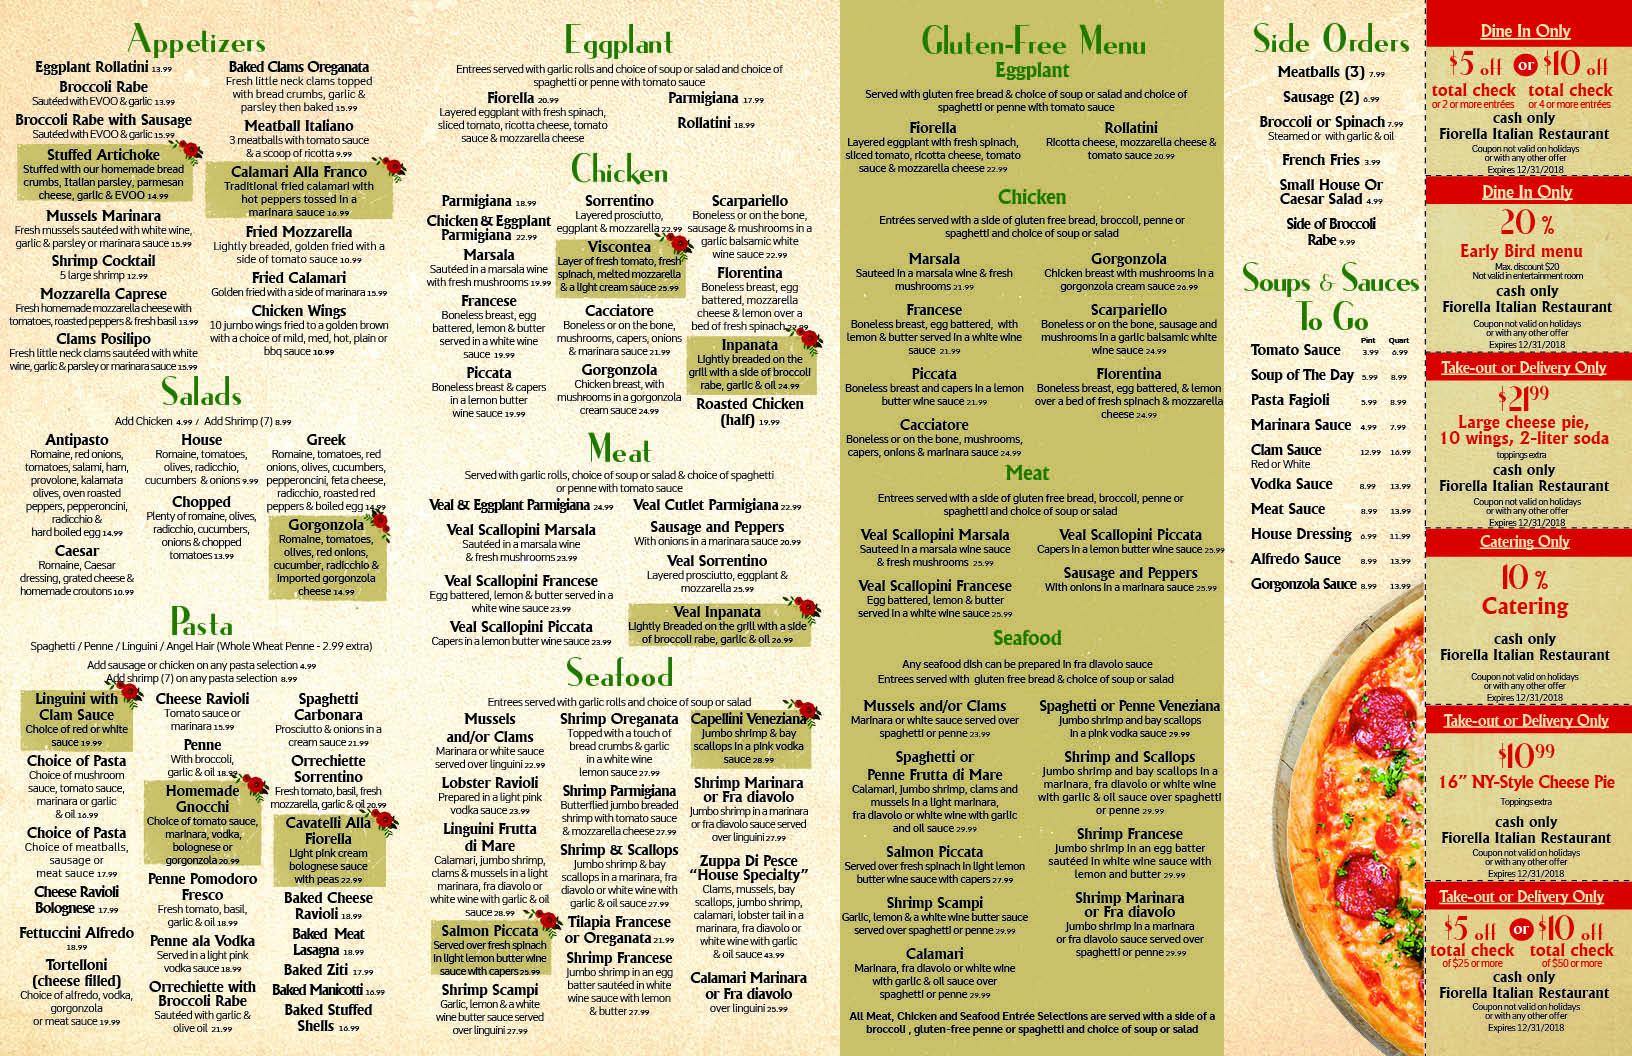 Italian Take Away Menu Take Out Menu Fiorella Italian Restaurant